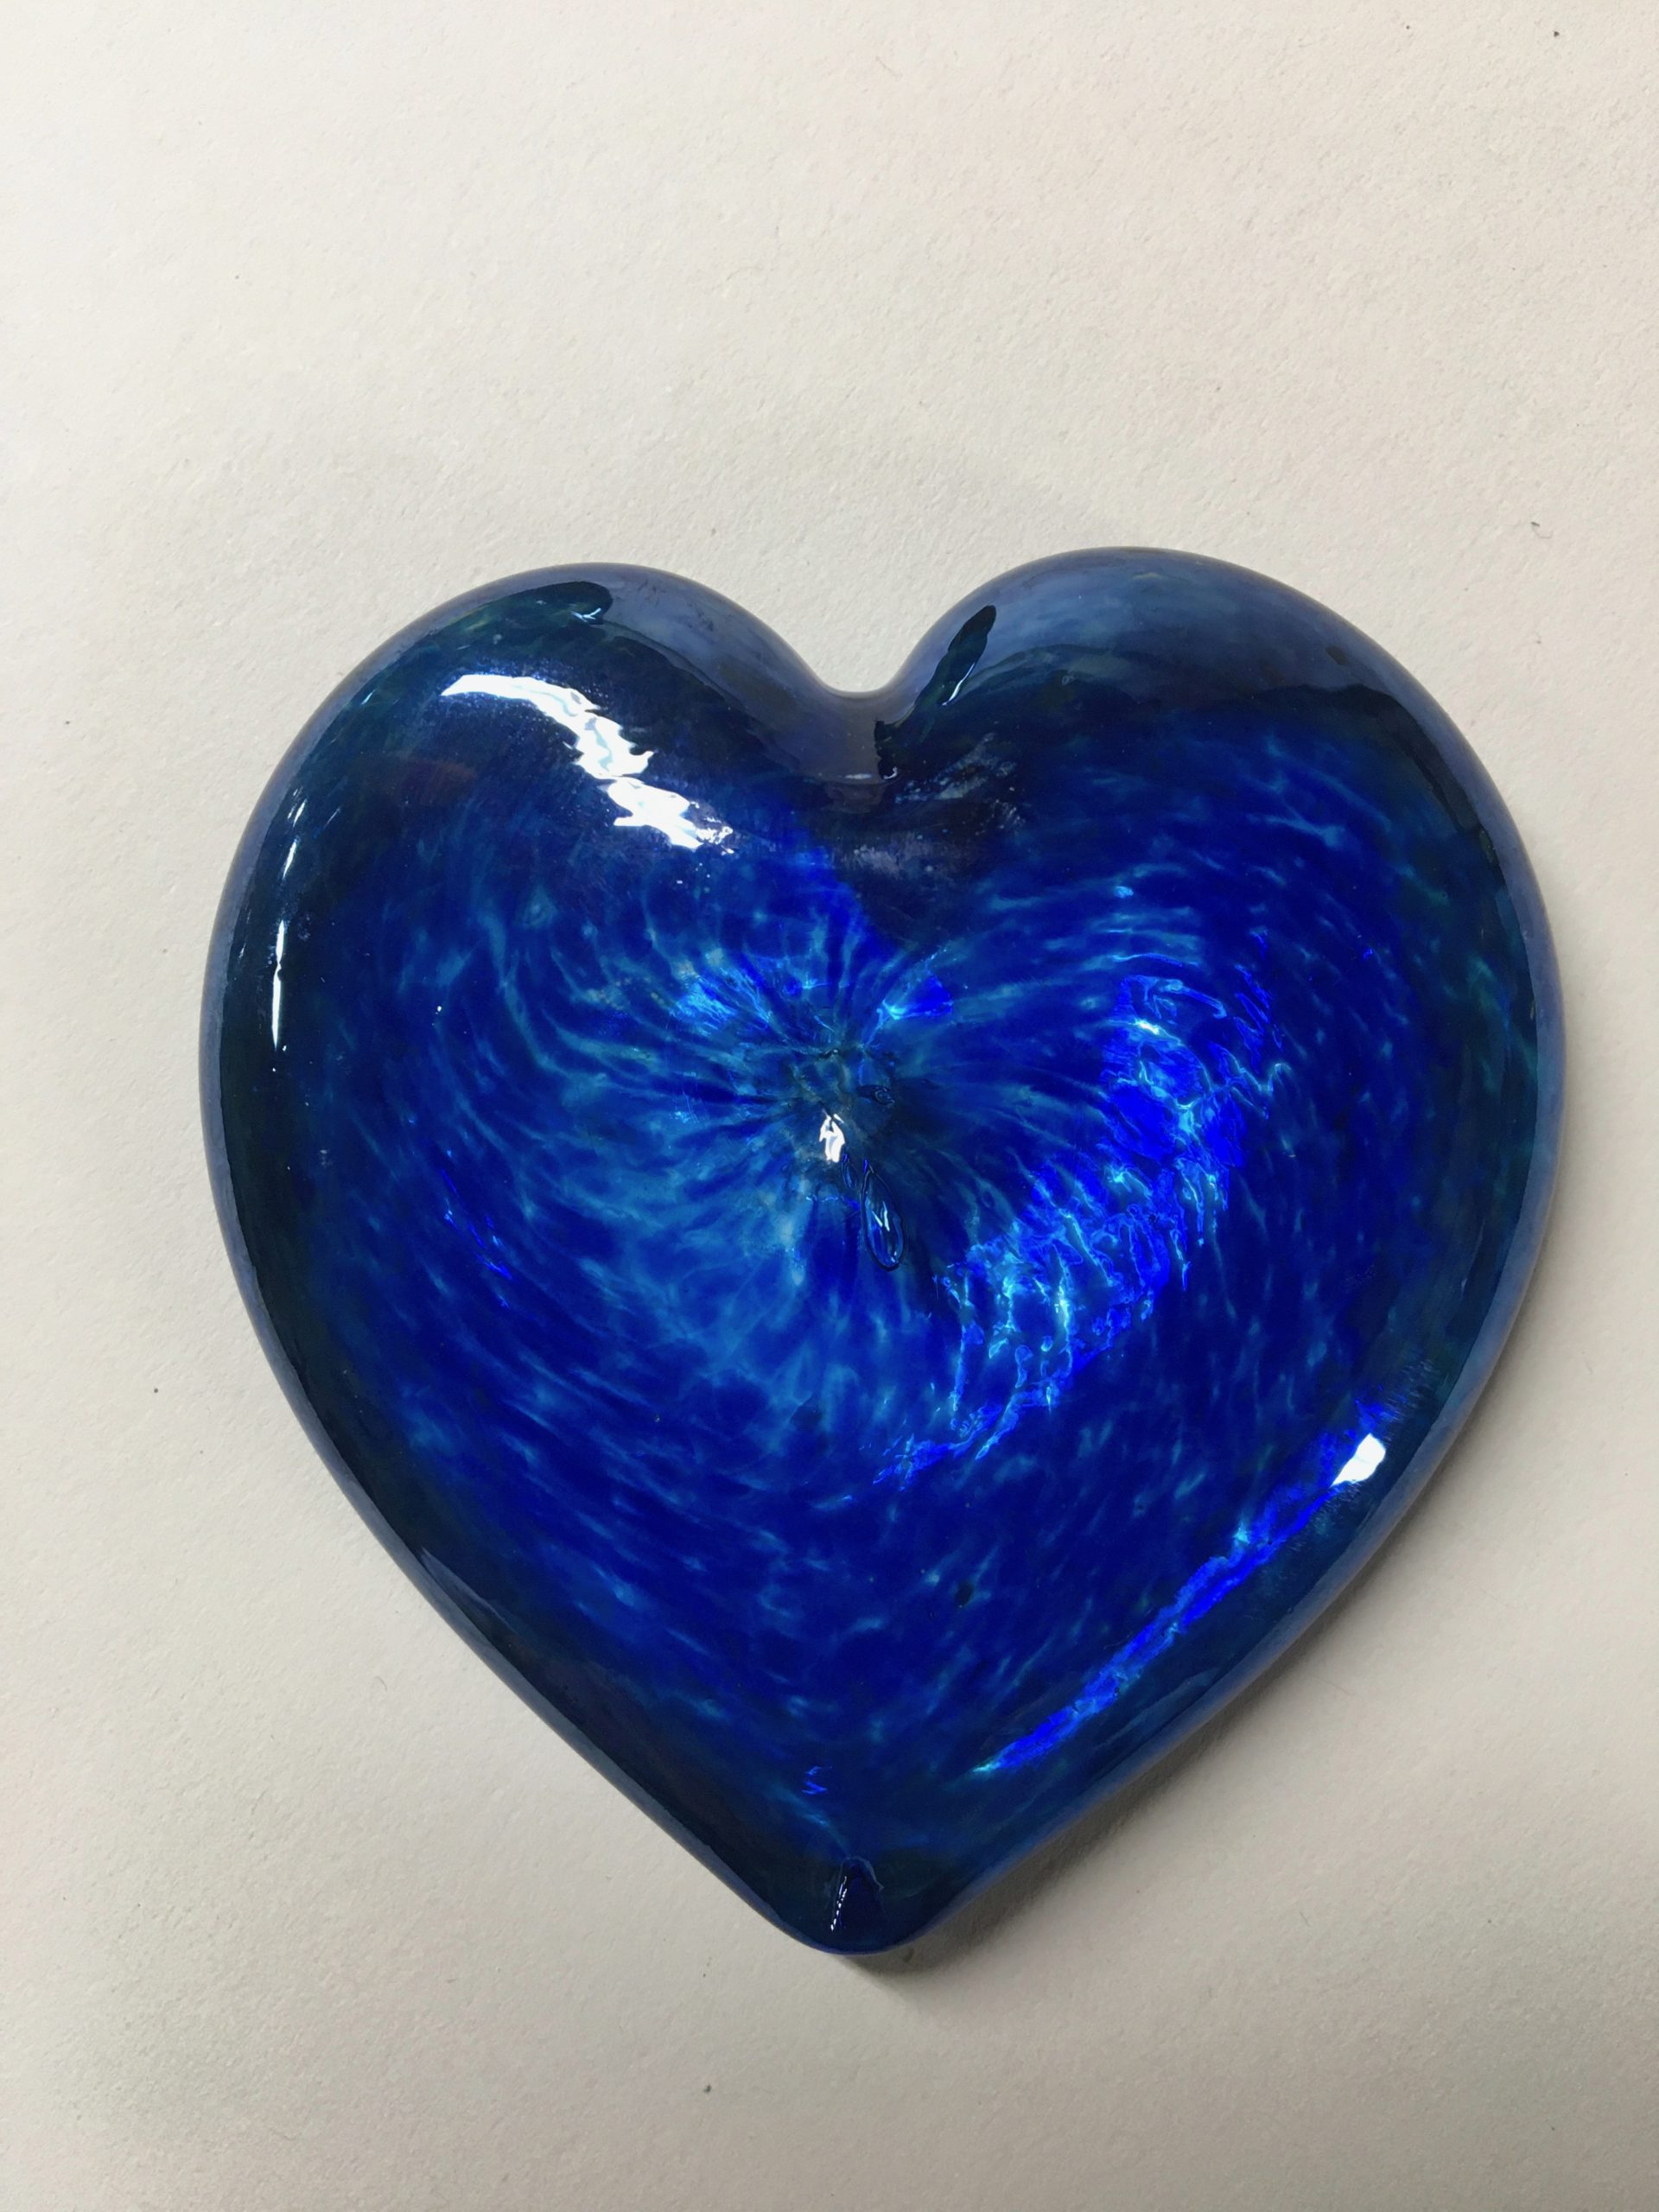 Heart of glass blue